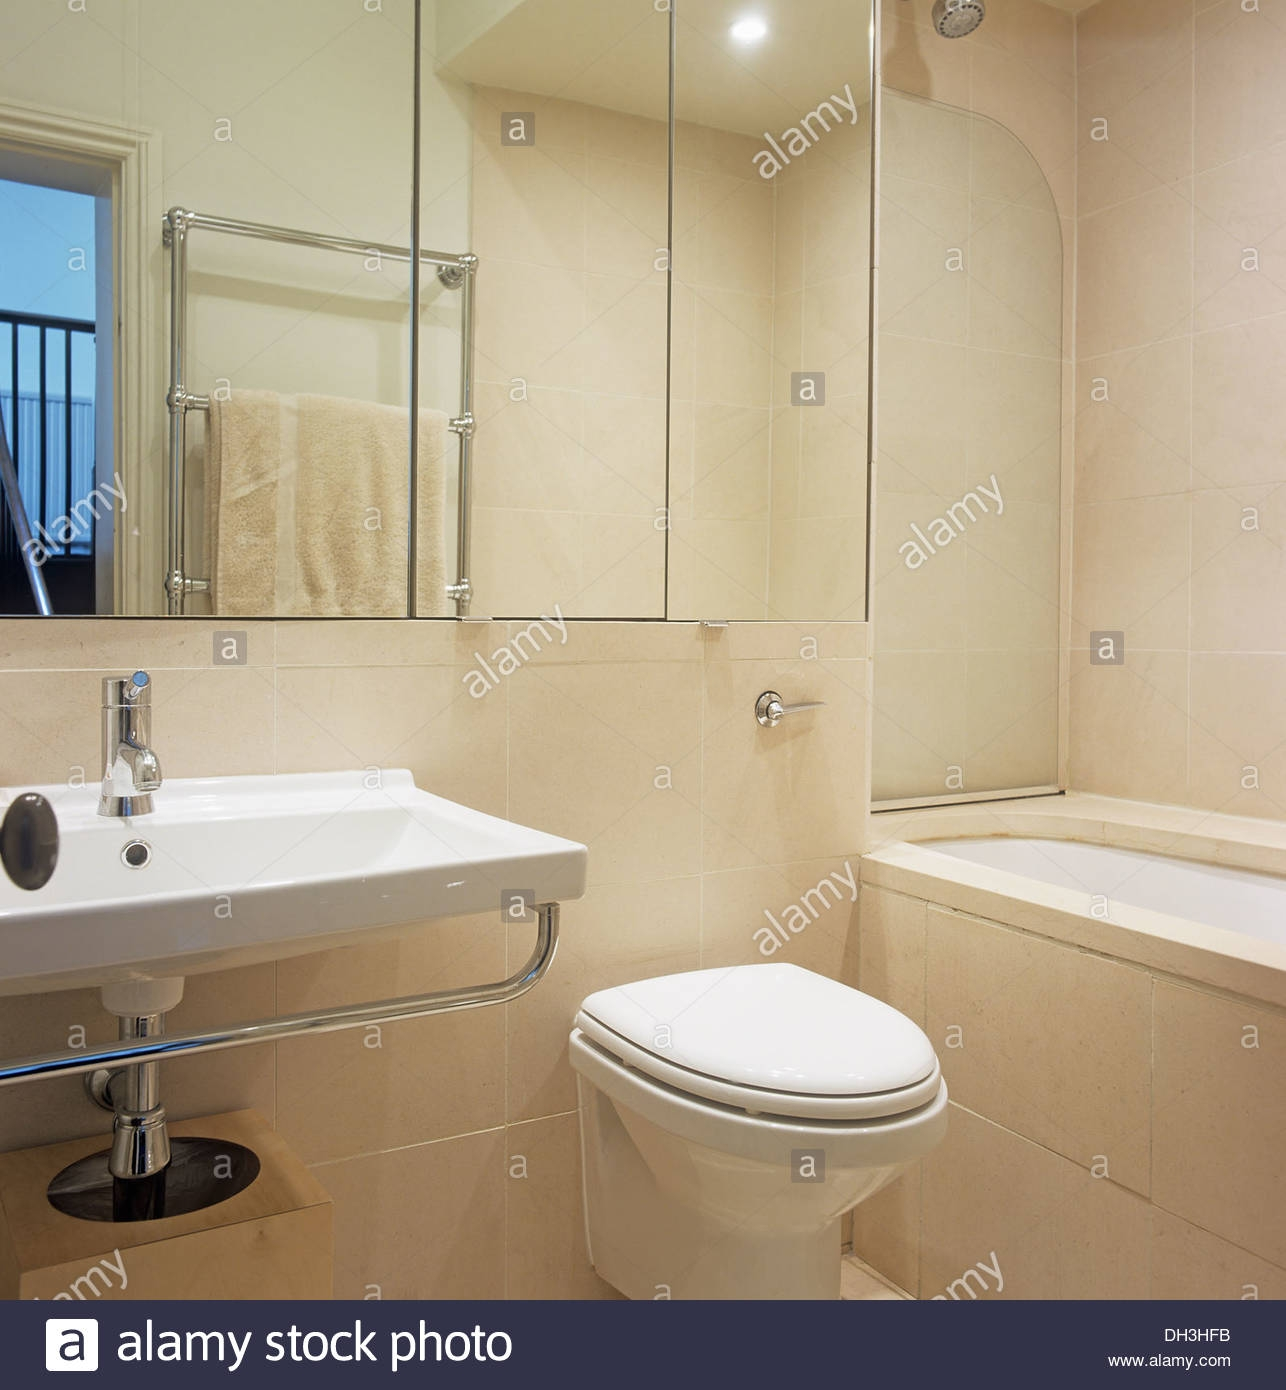 Bathroom Mirror Over Sink And Toilet